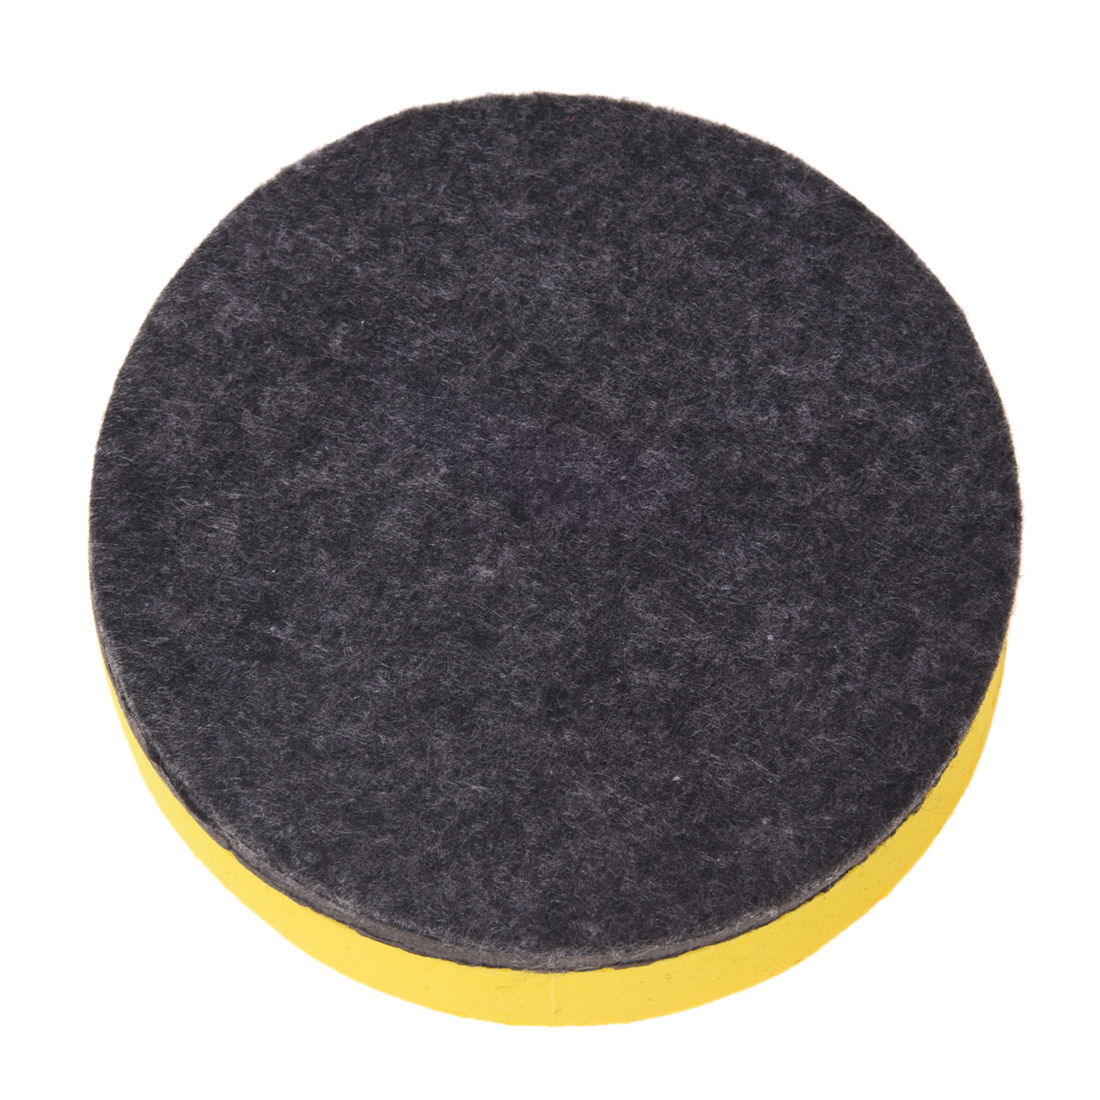 blackboard cleaner A blackboard (also known as a chalkboard) is a reusable writing surface on which text or drawings are made with sticks of calcium sulfate or calcium carbonate, known.